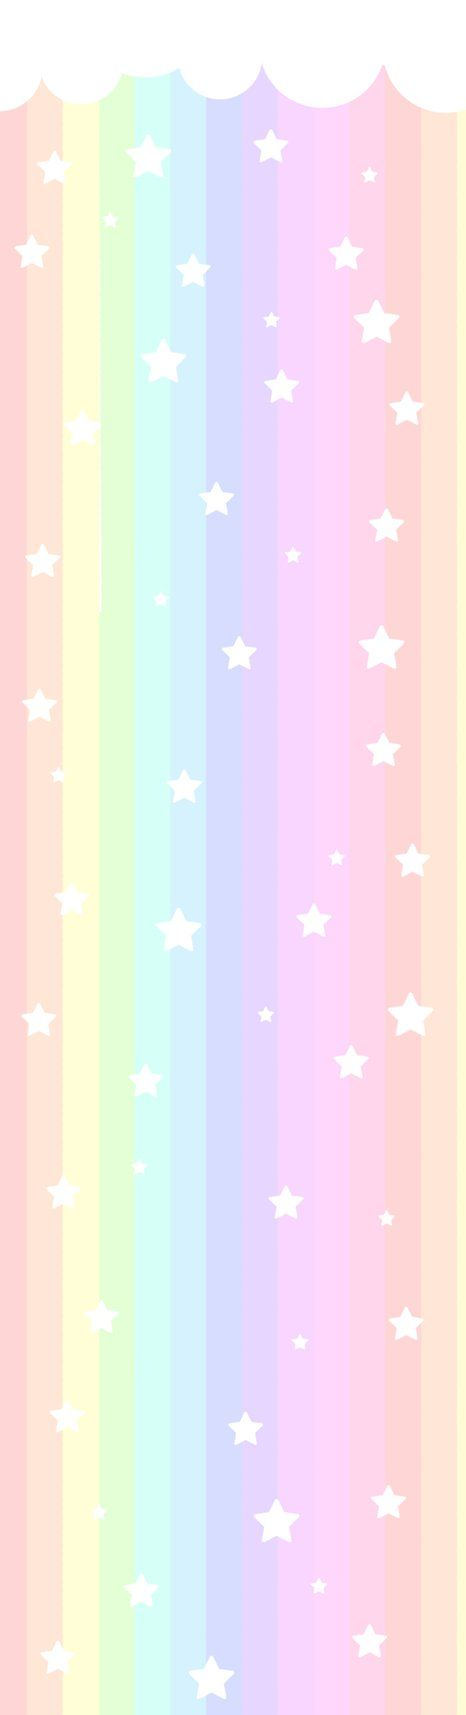 pastel wallpaper stardust colorful - photo #40